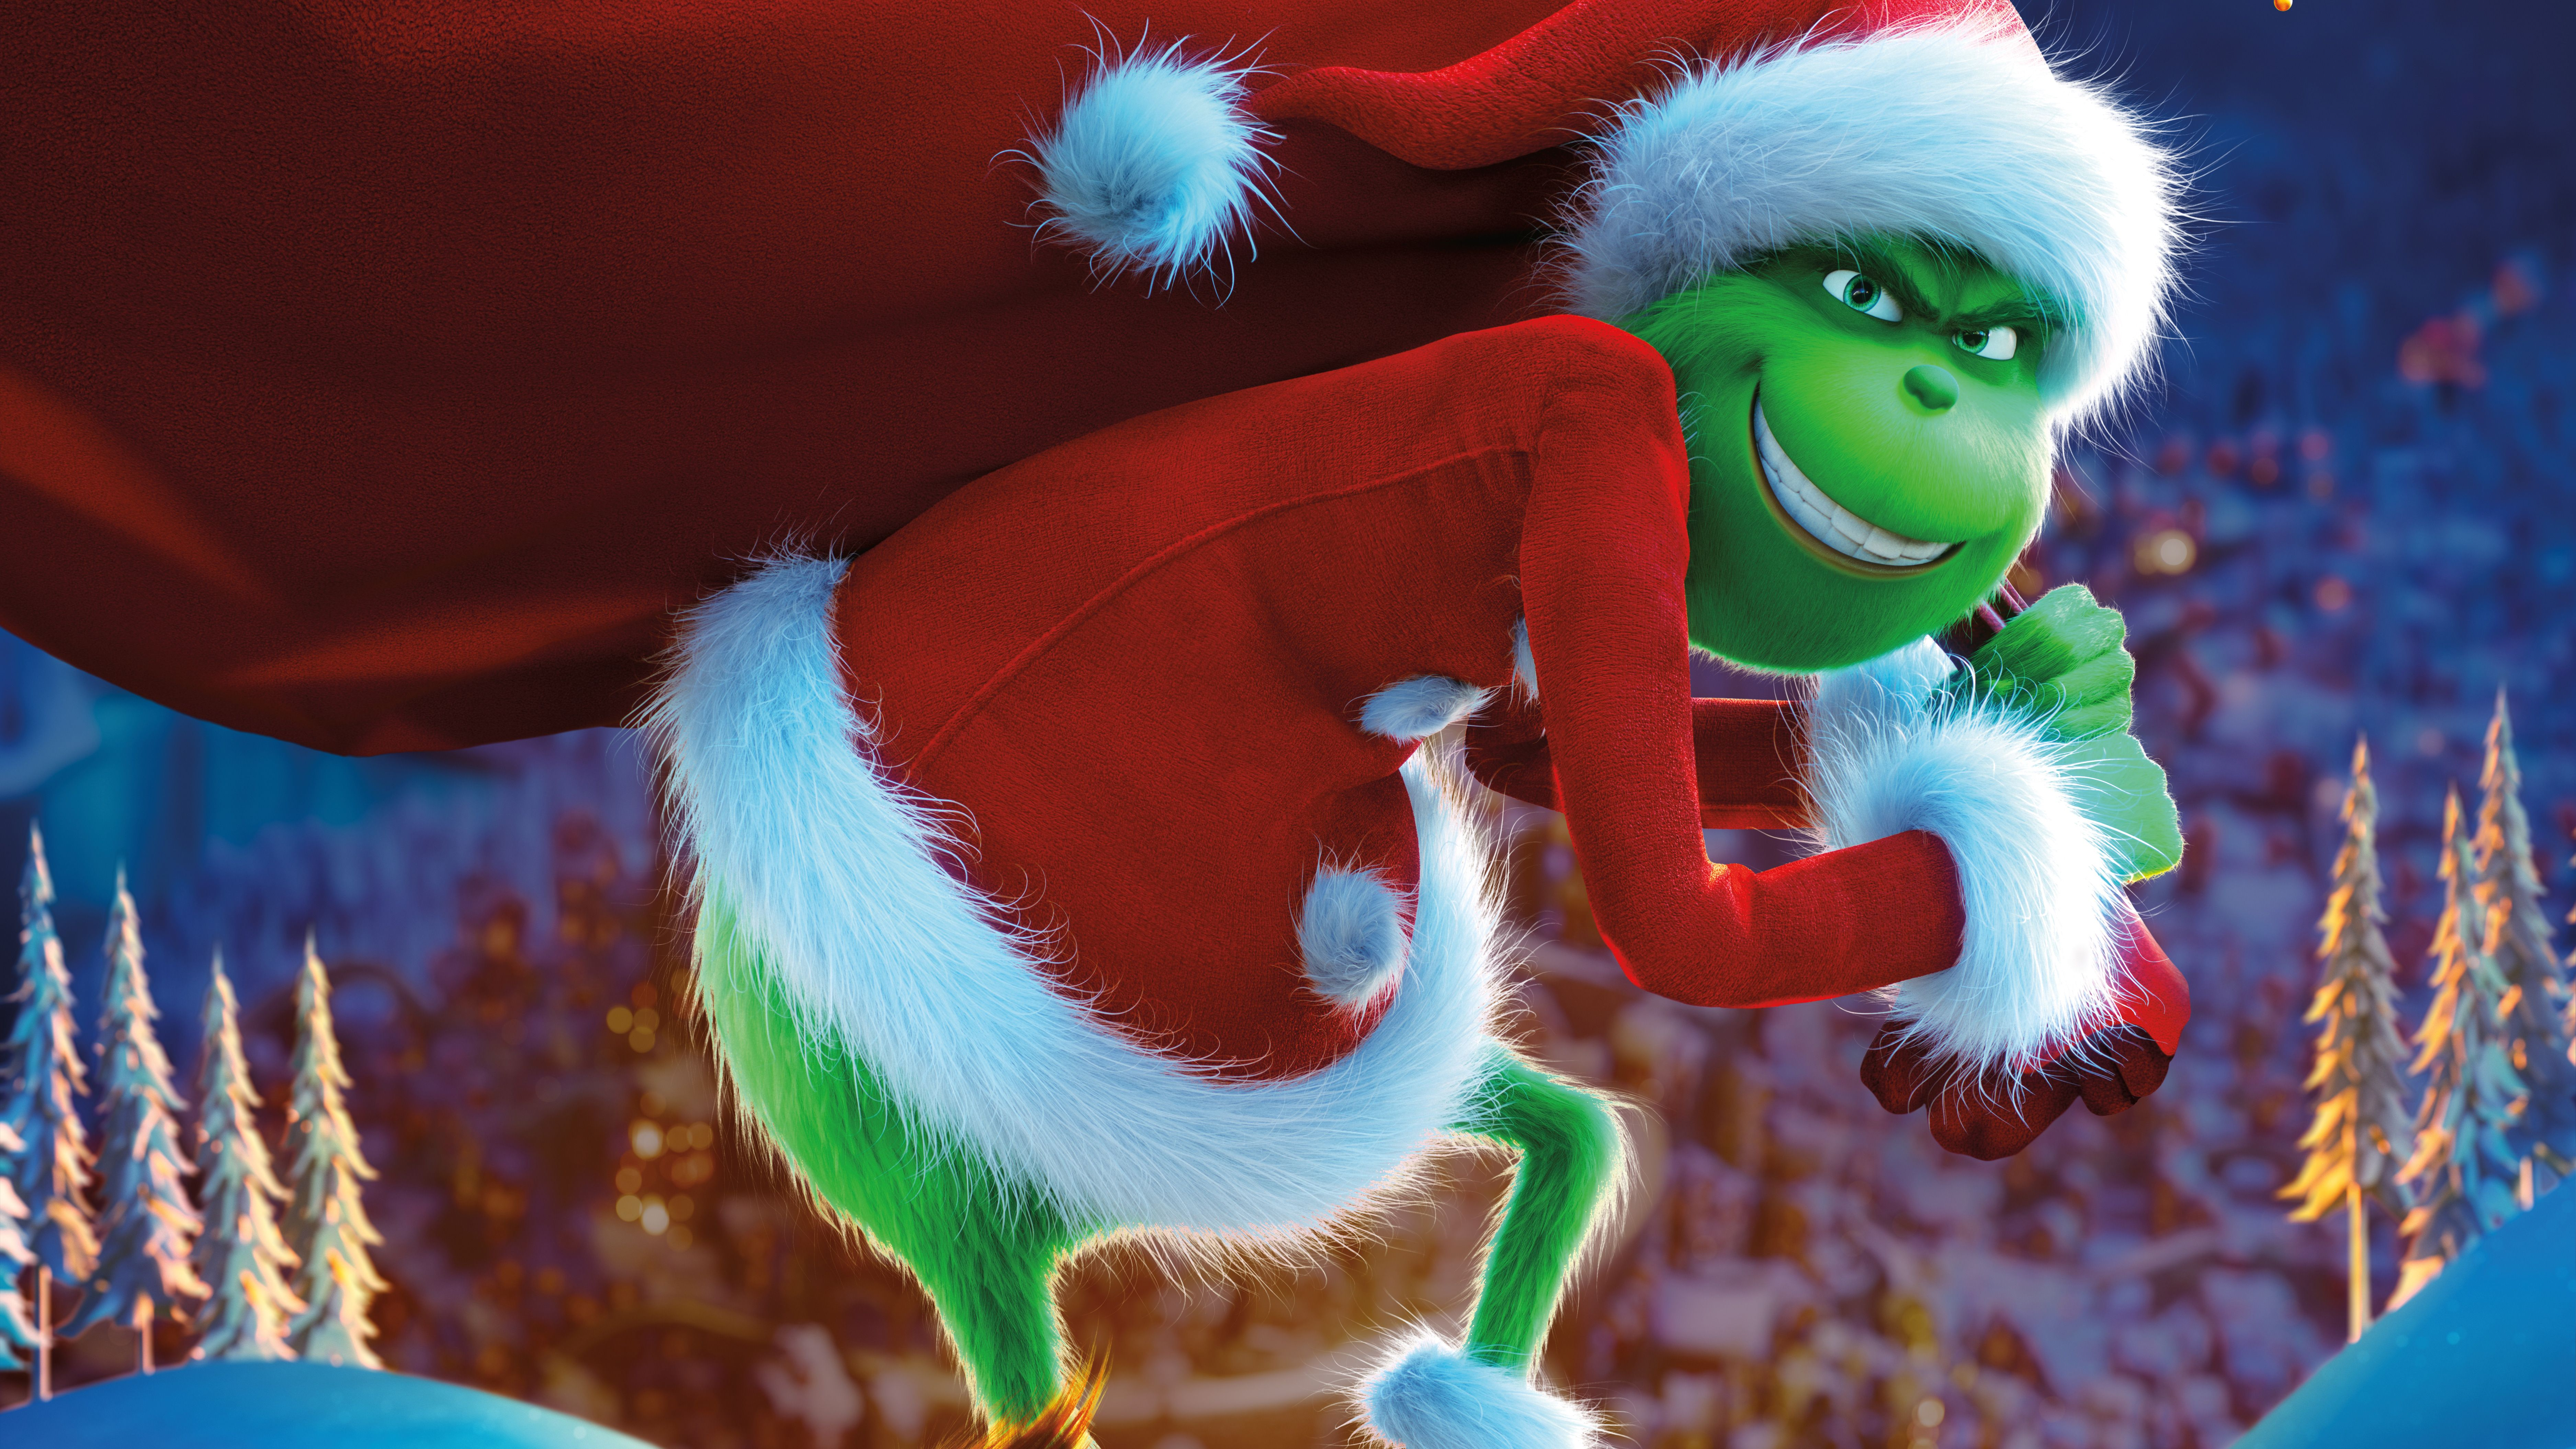 The Grinch 2018 Wallpapers   Top The Grinch 2018 Backgrounds 7500x4219